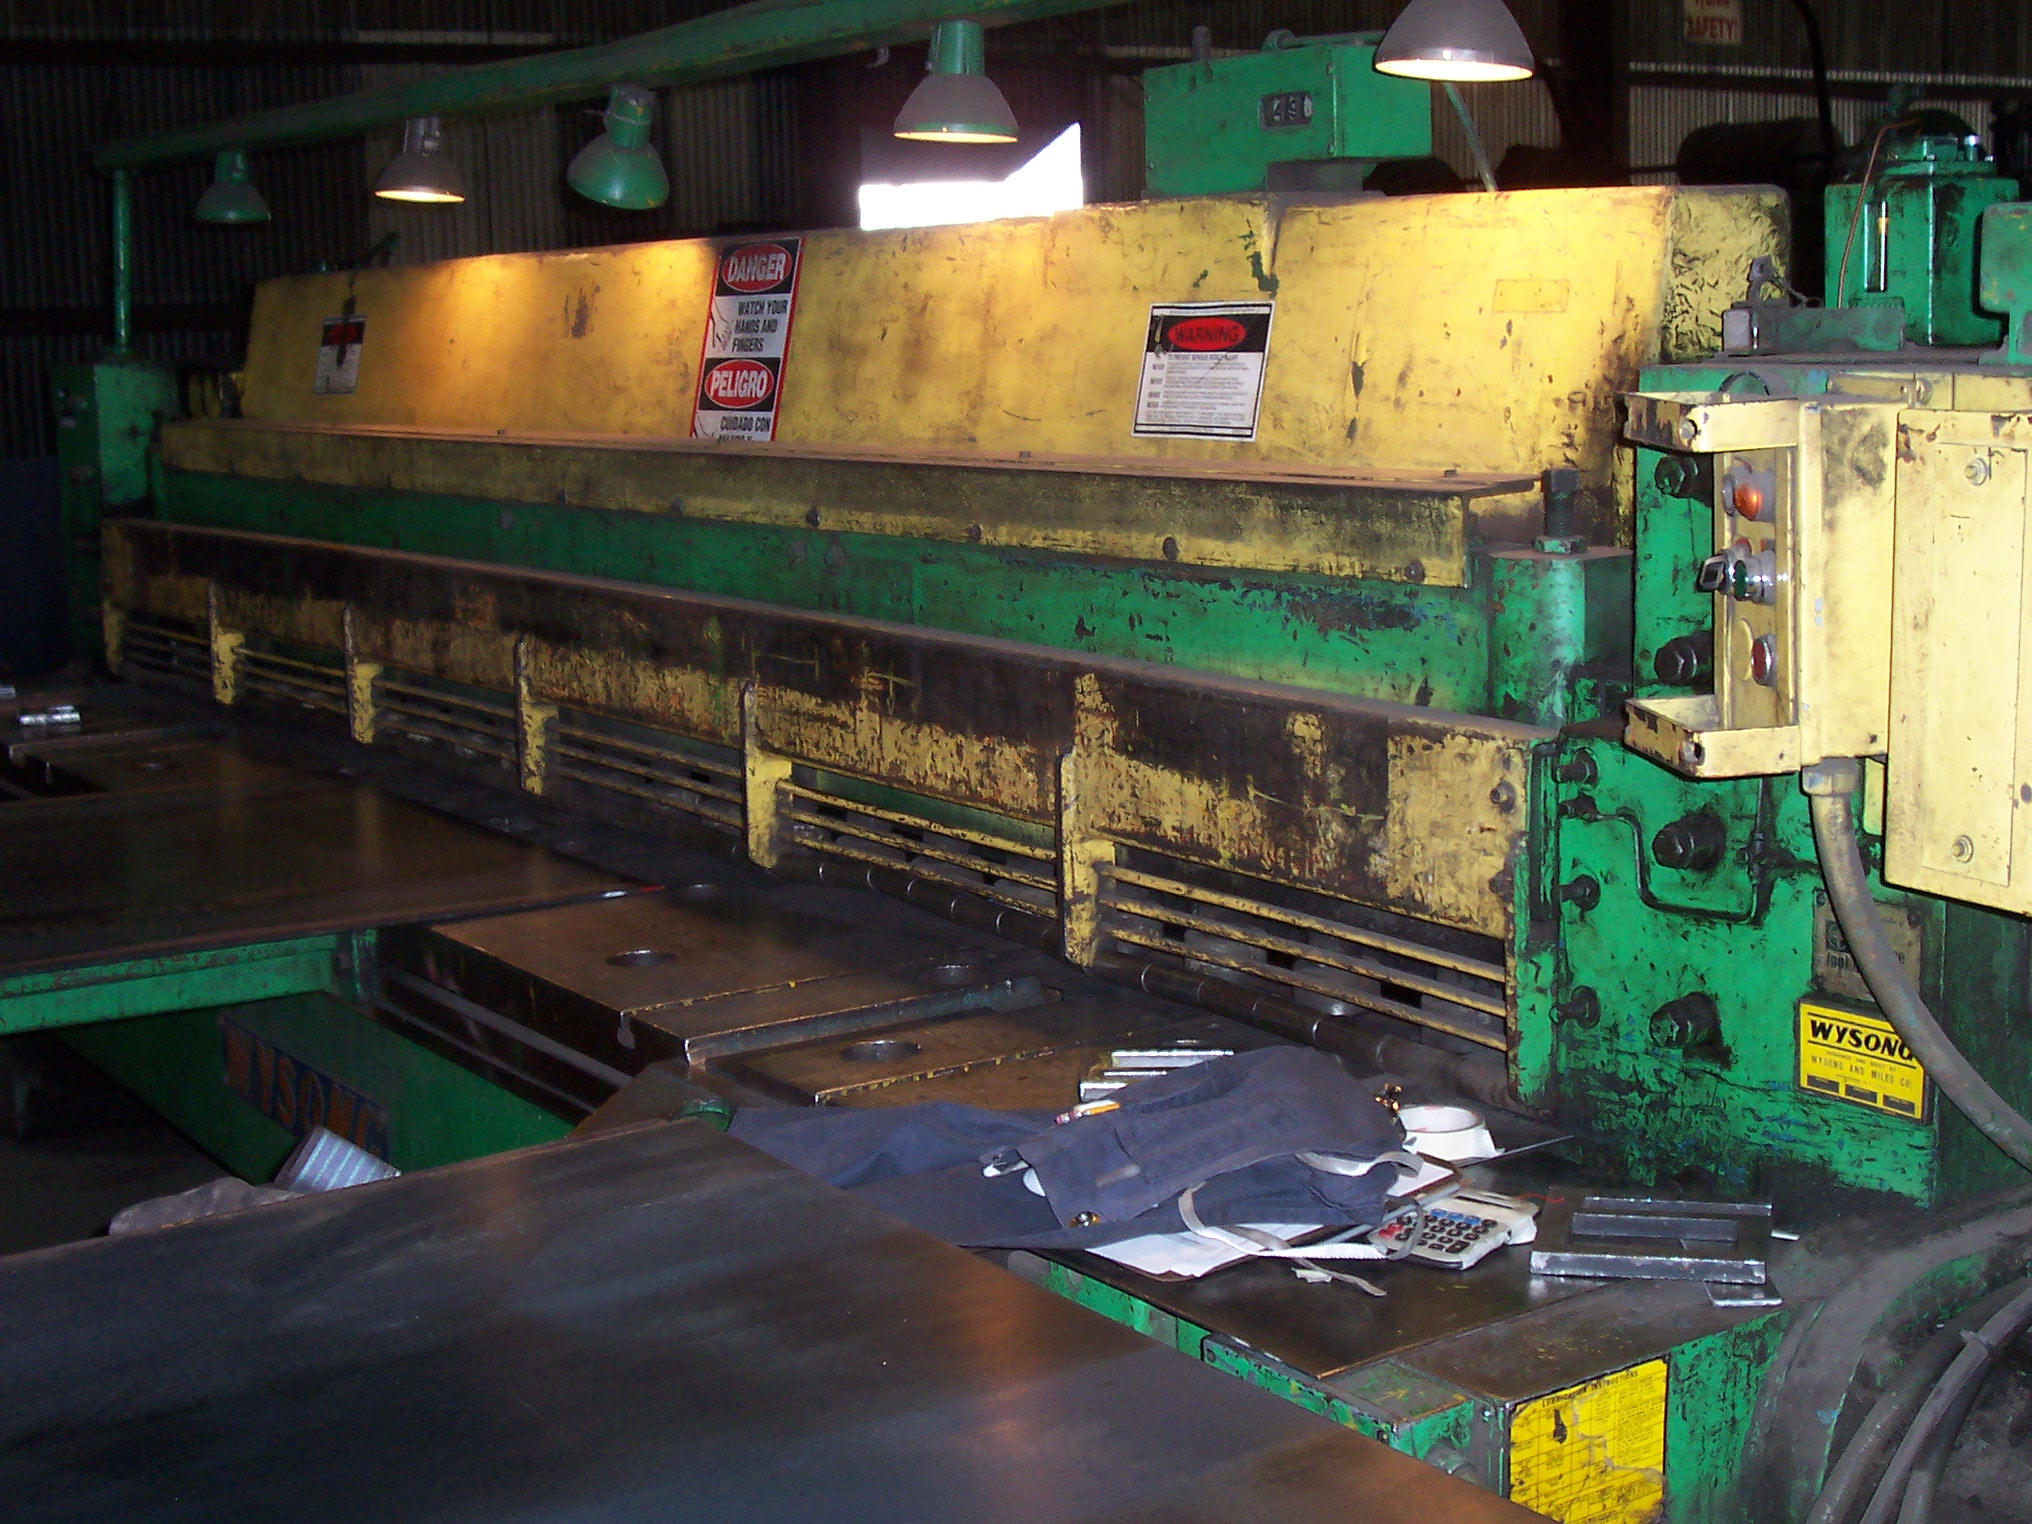 "WYSONG12' X 1/2"" WYSONG POWER SQUARING SHEAR"